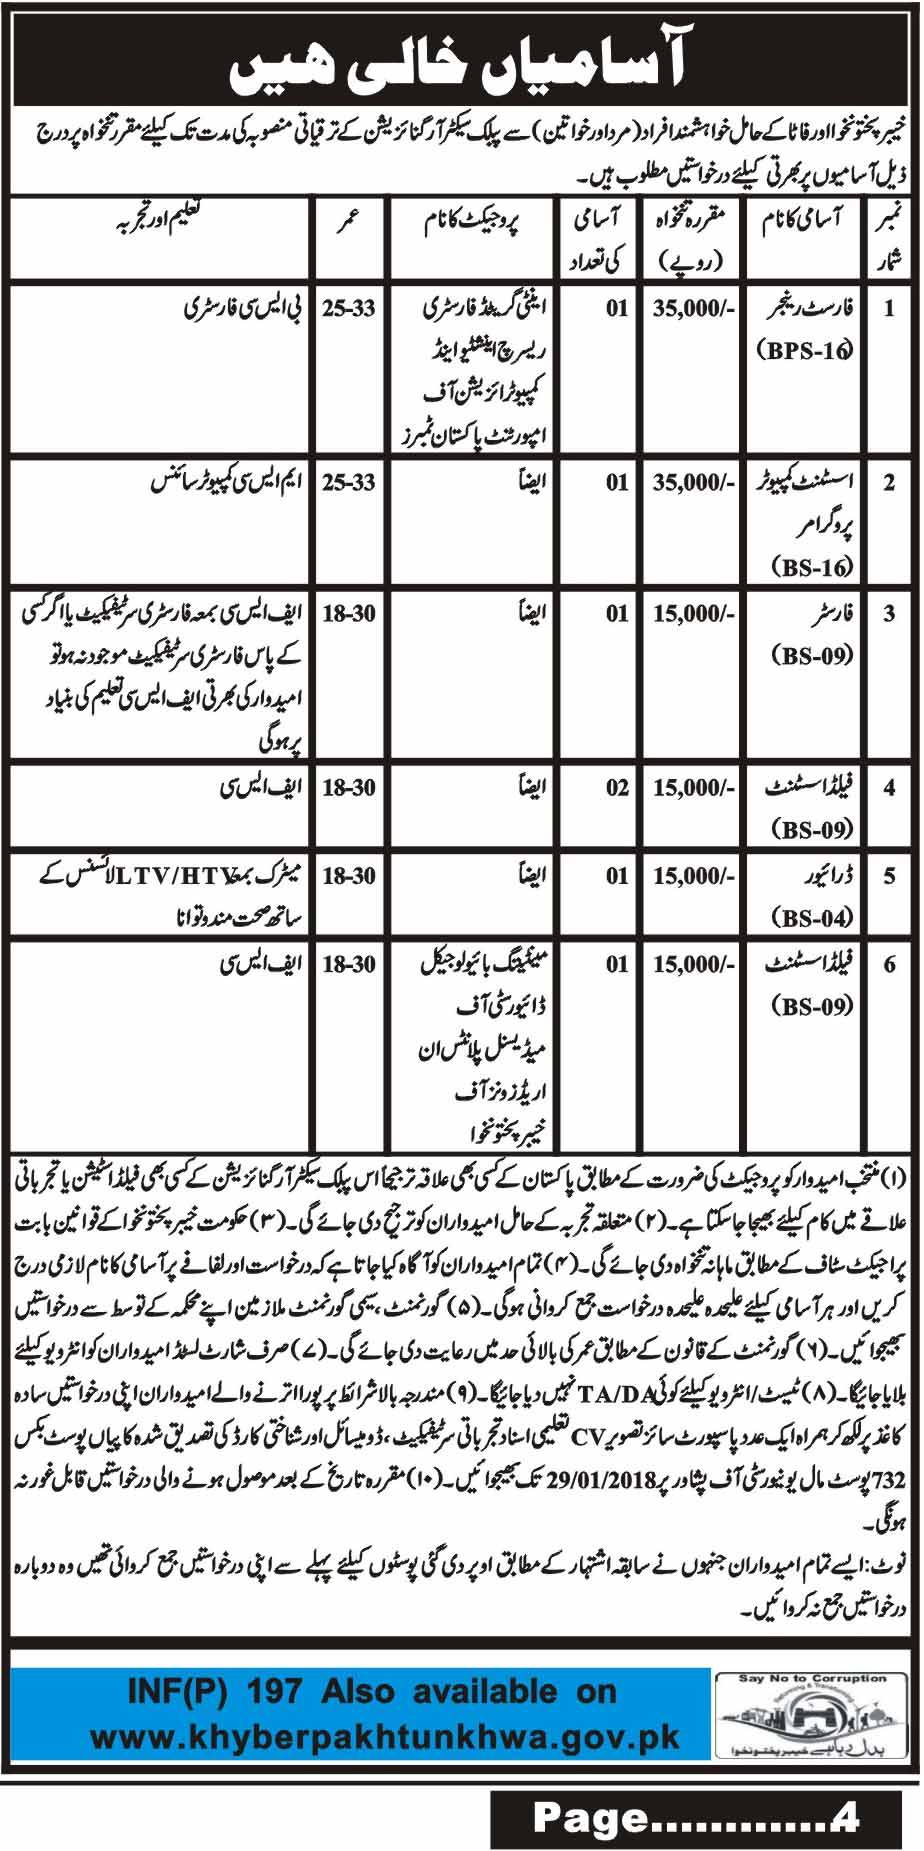 Govt. of Khyber Pakhtunkhwa, Public Sector Organization 07 Jobs, 15 january 2018 Daily Mashriq Newspaper